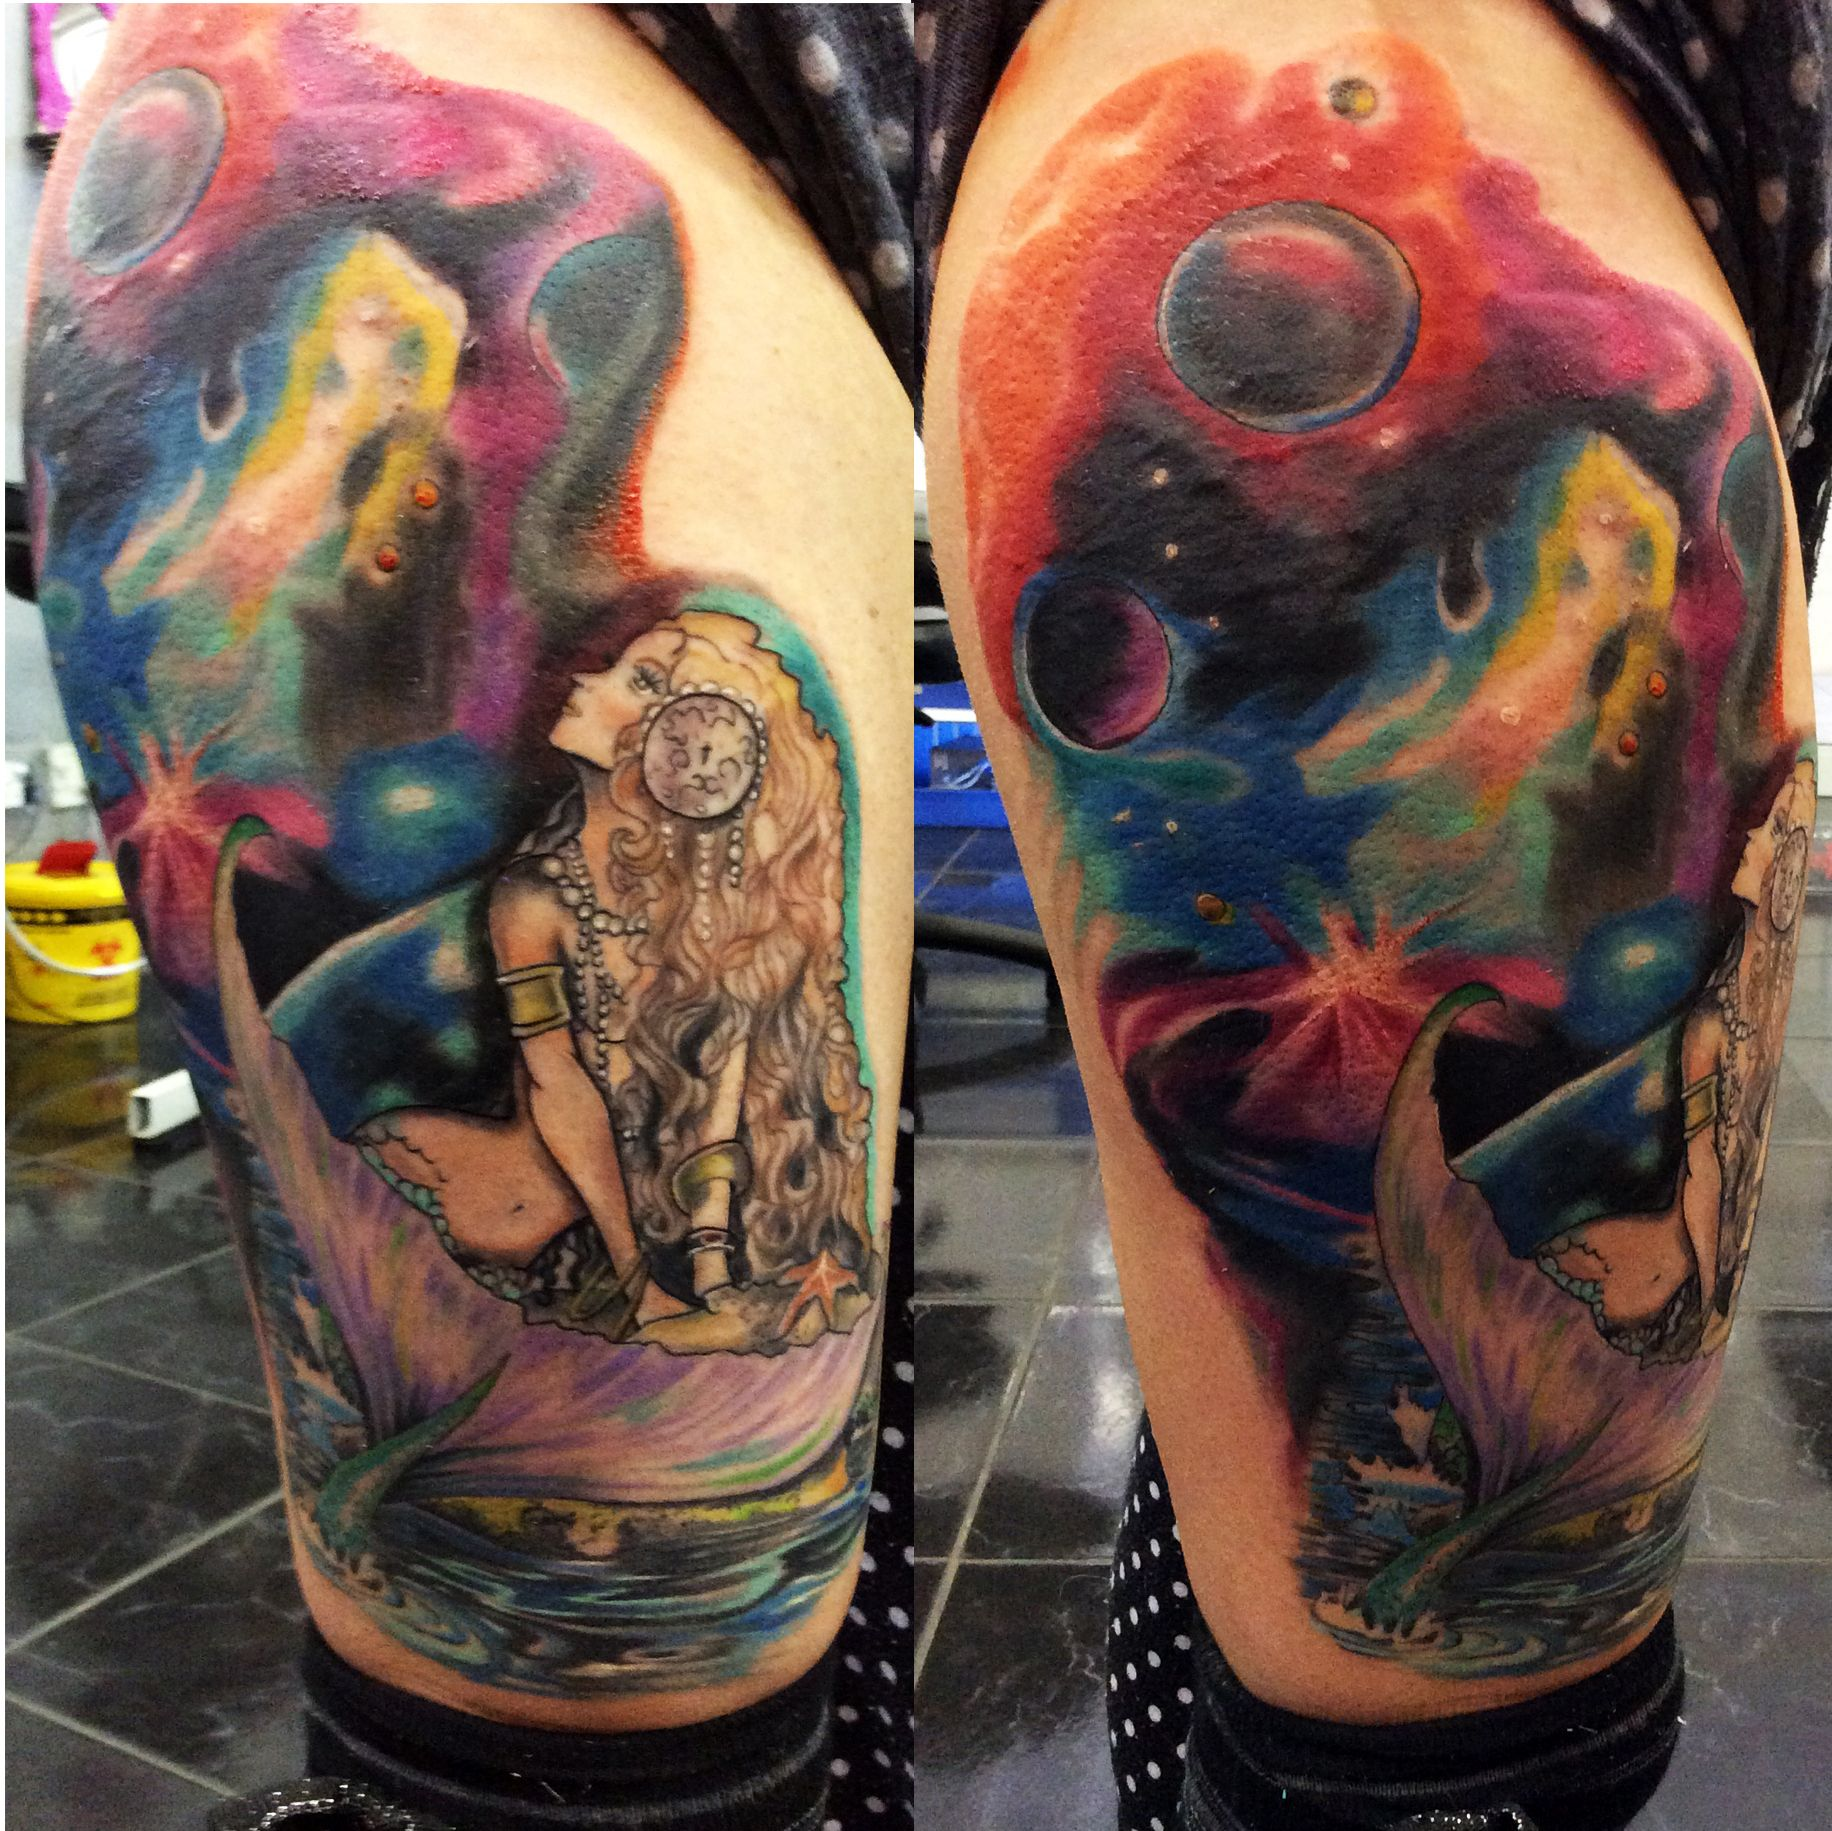 Henna Tattoo In Johannesburg: Galaxy Mermaid Tattoo By Angelo. Rising Dragon Tattoo